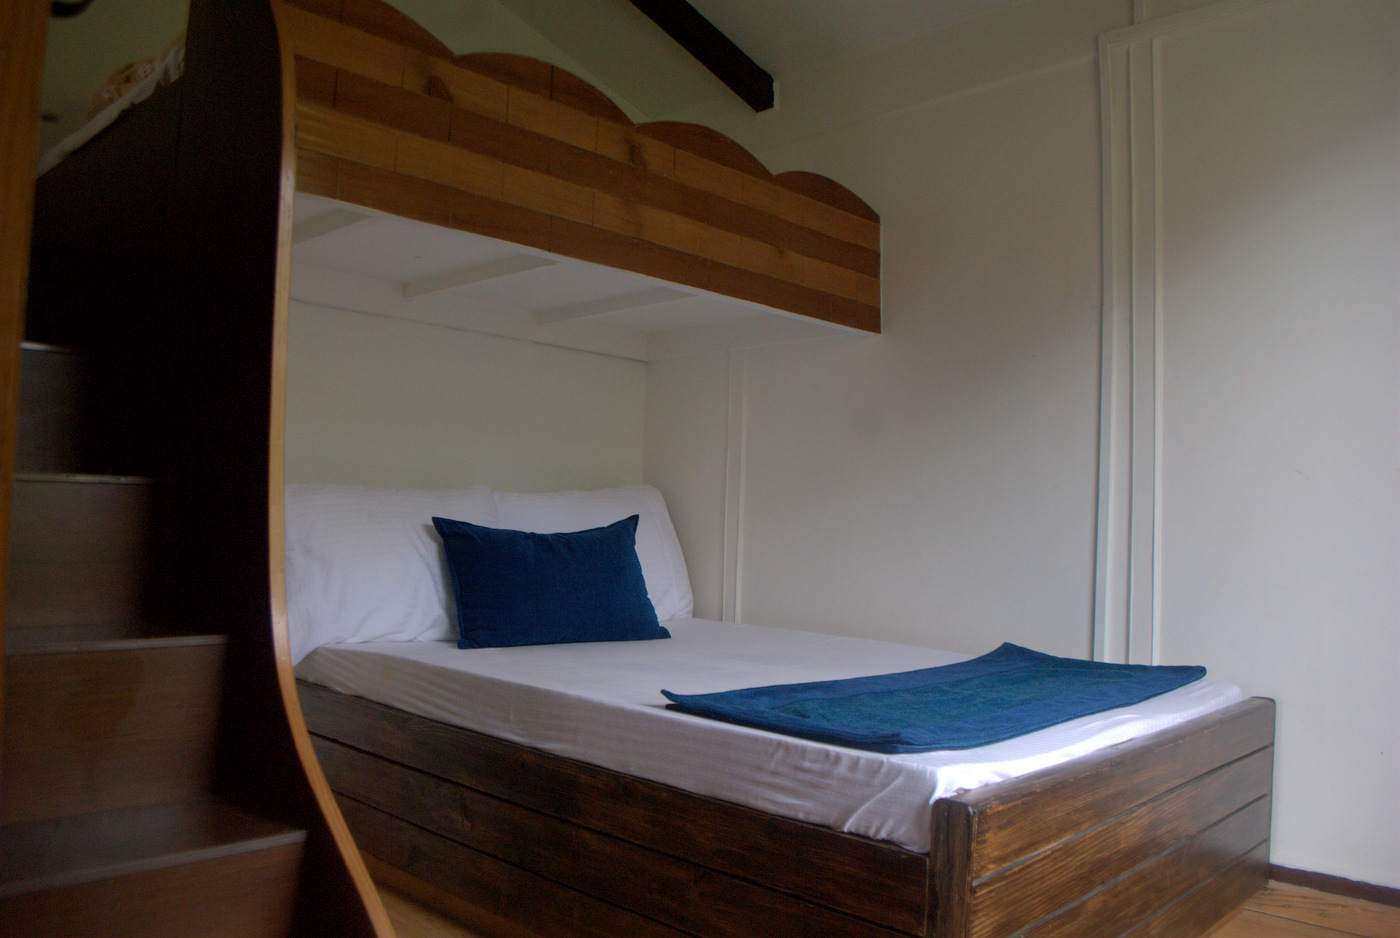 Rosevilla Suite - Bunk beds